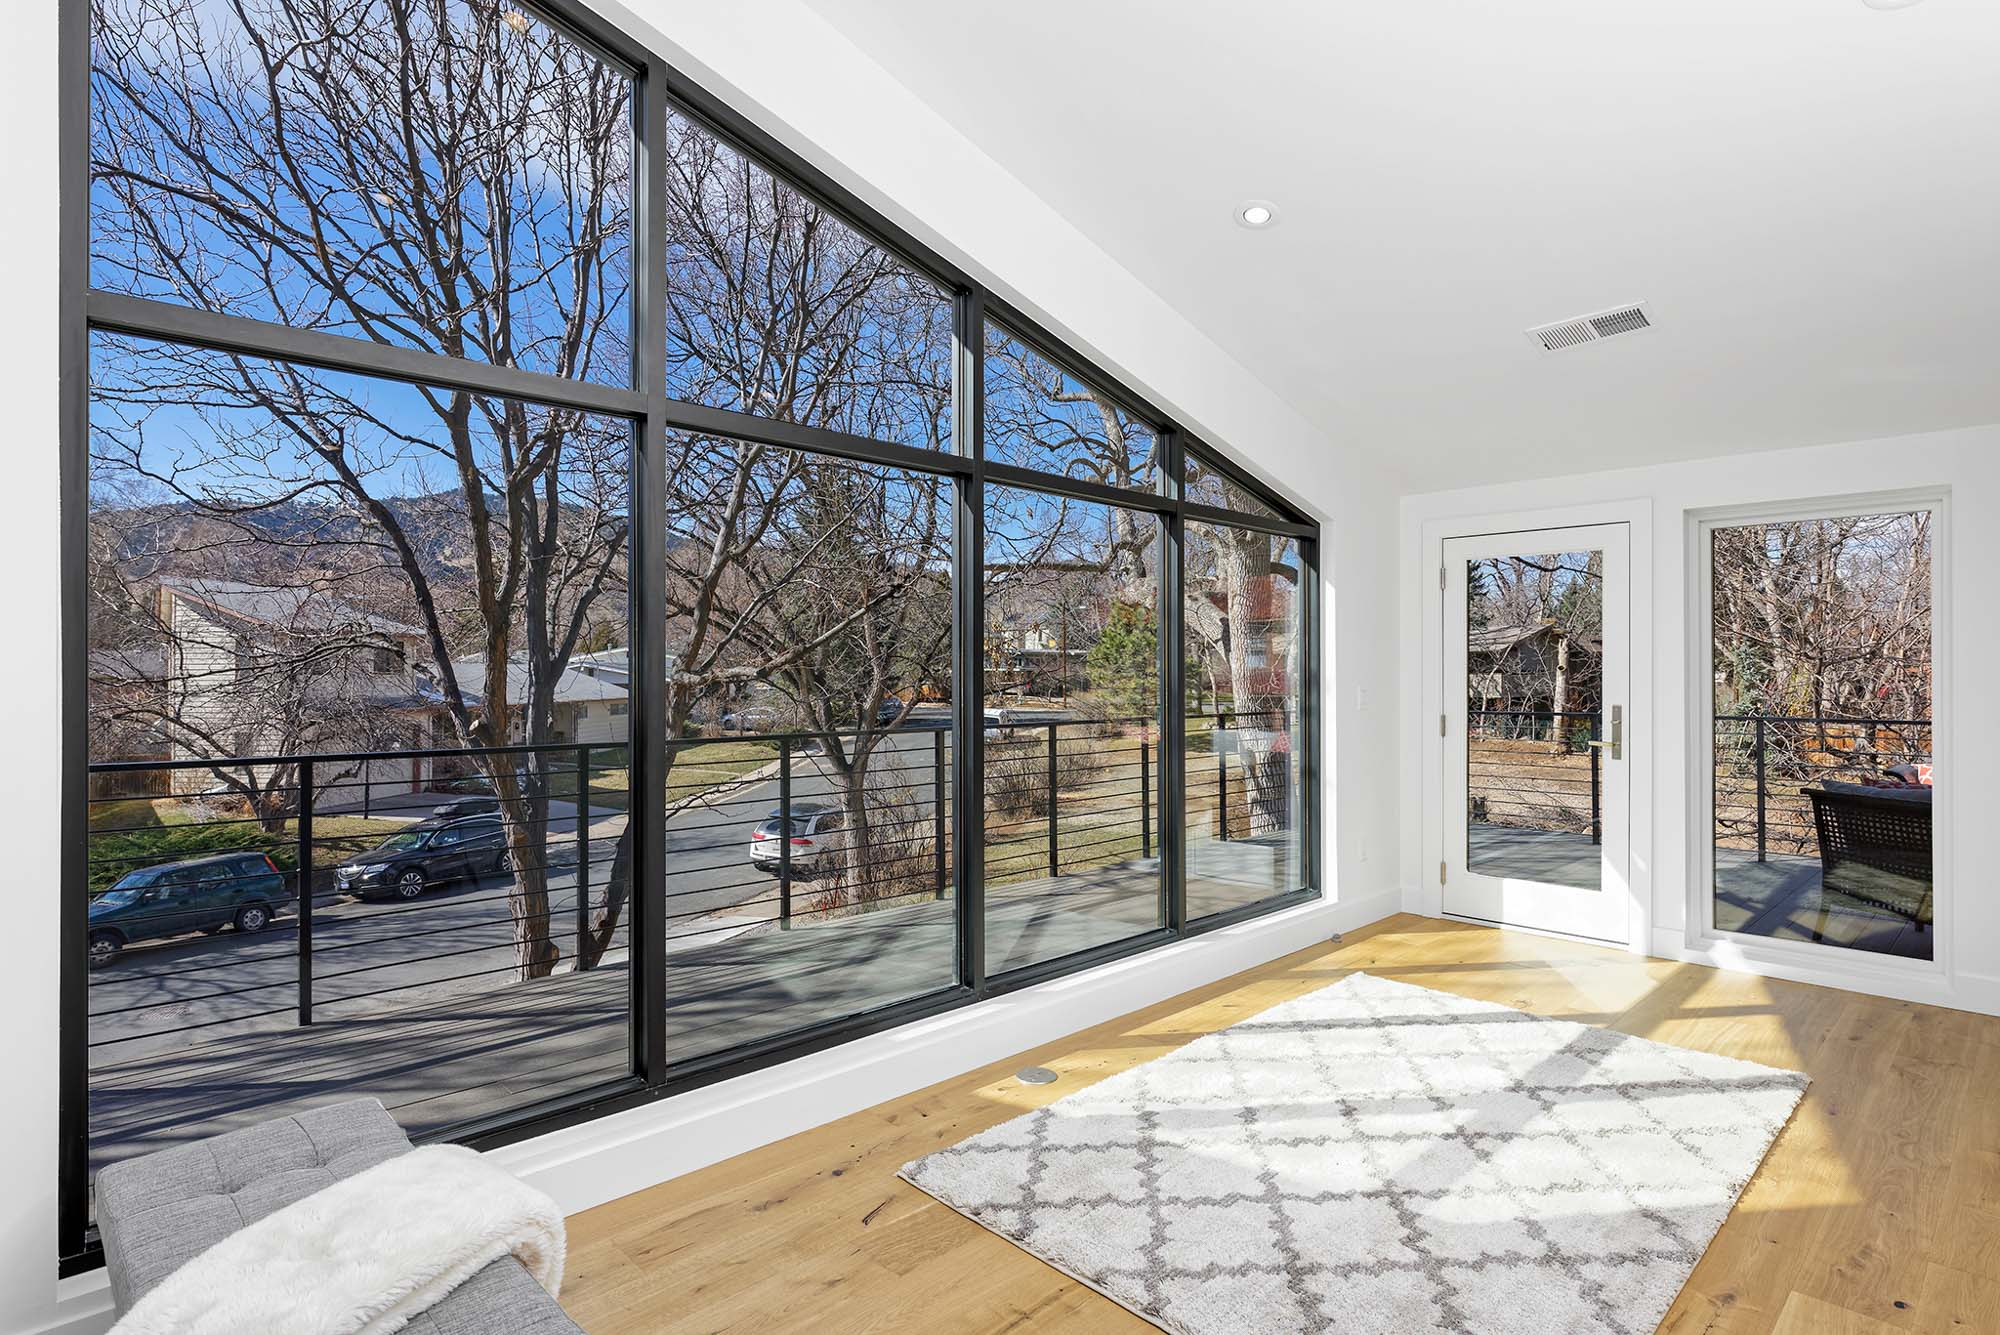 zachary-cornwell-photography-home-real-estate-denver-boulder